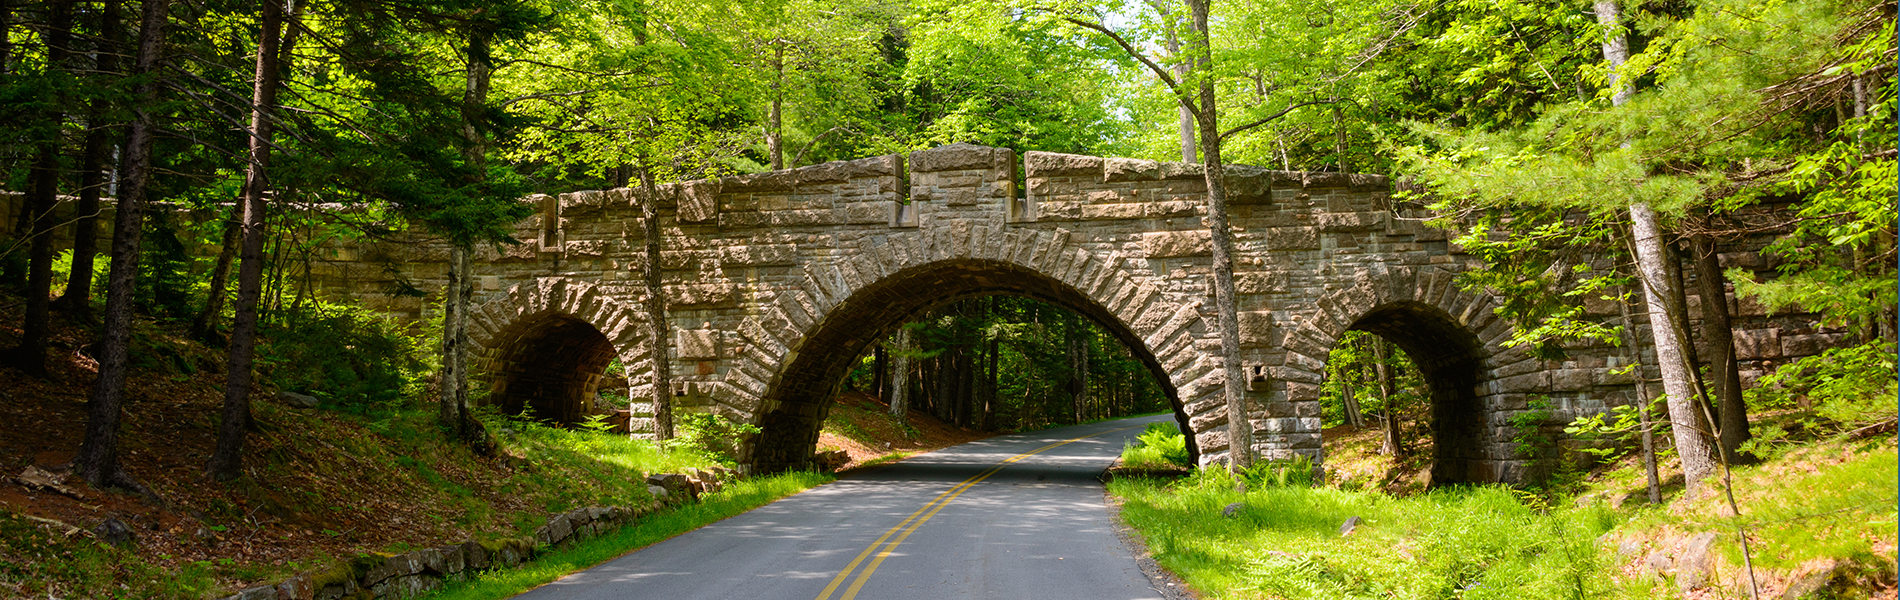 Photo of Bridge on the Park Loop Road in Acadia National Park, Bar Harbor, Maine